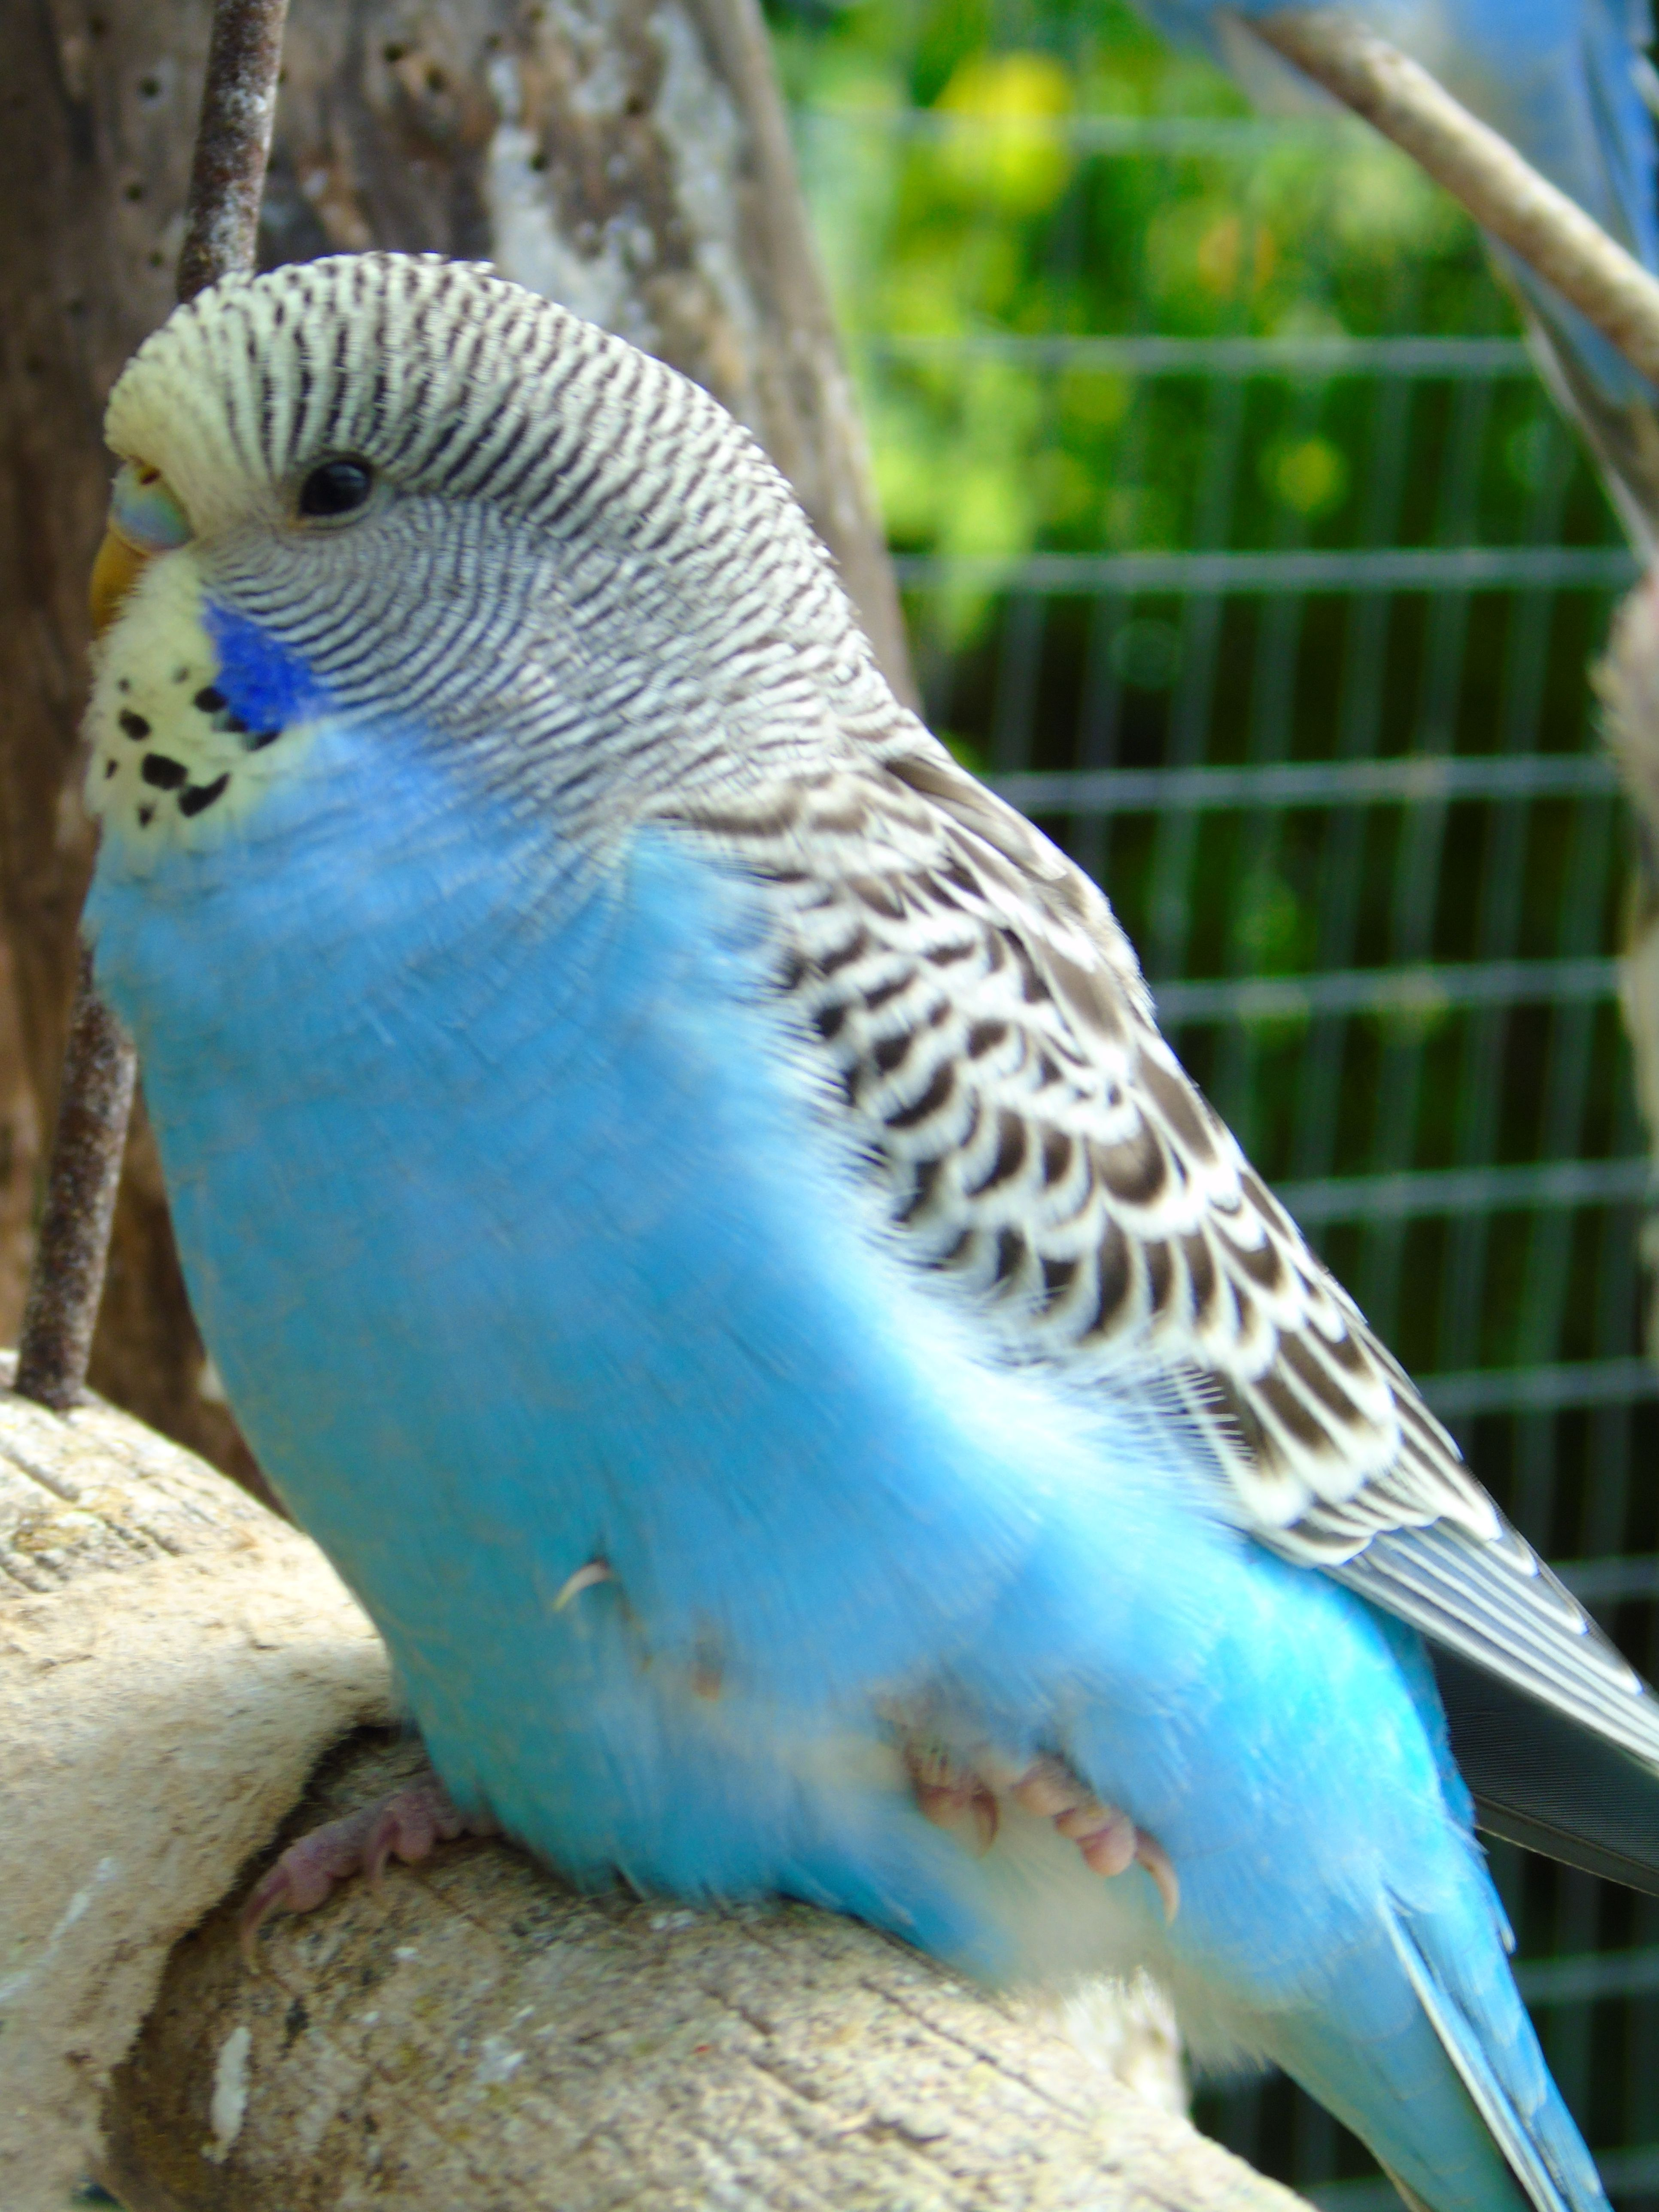 yellow headed sky blue baby budgie | Parakeets and other